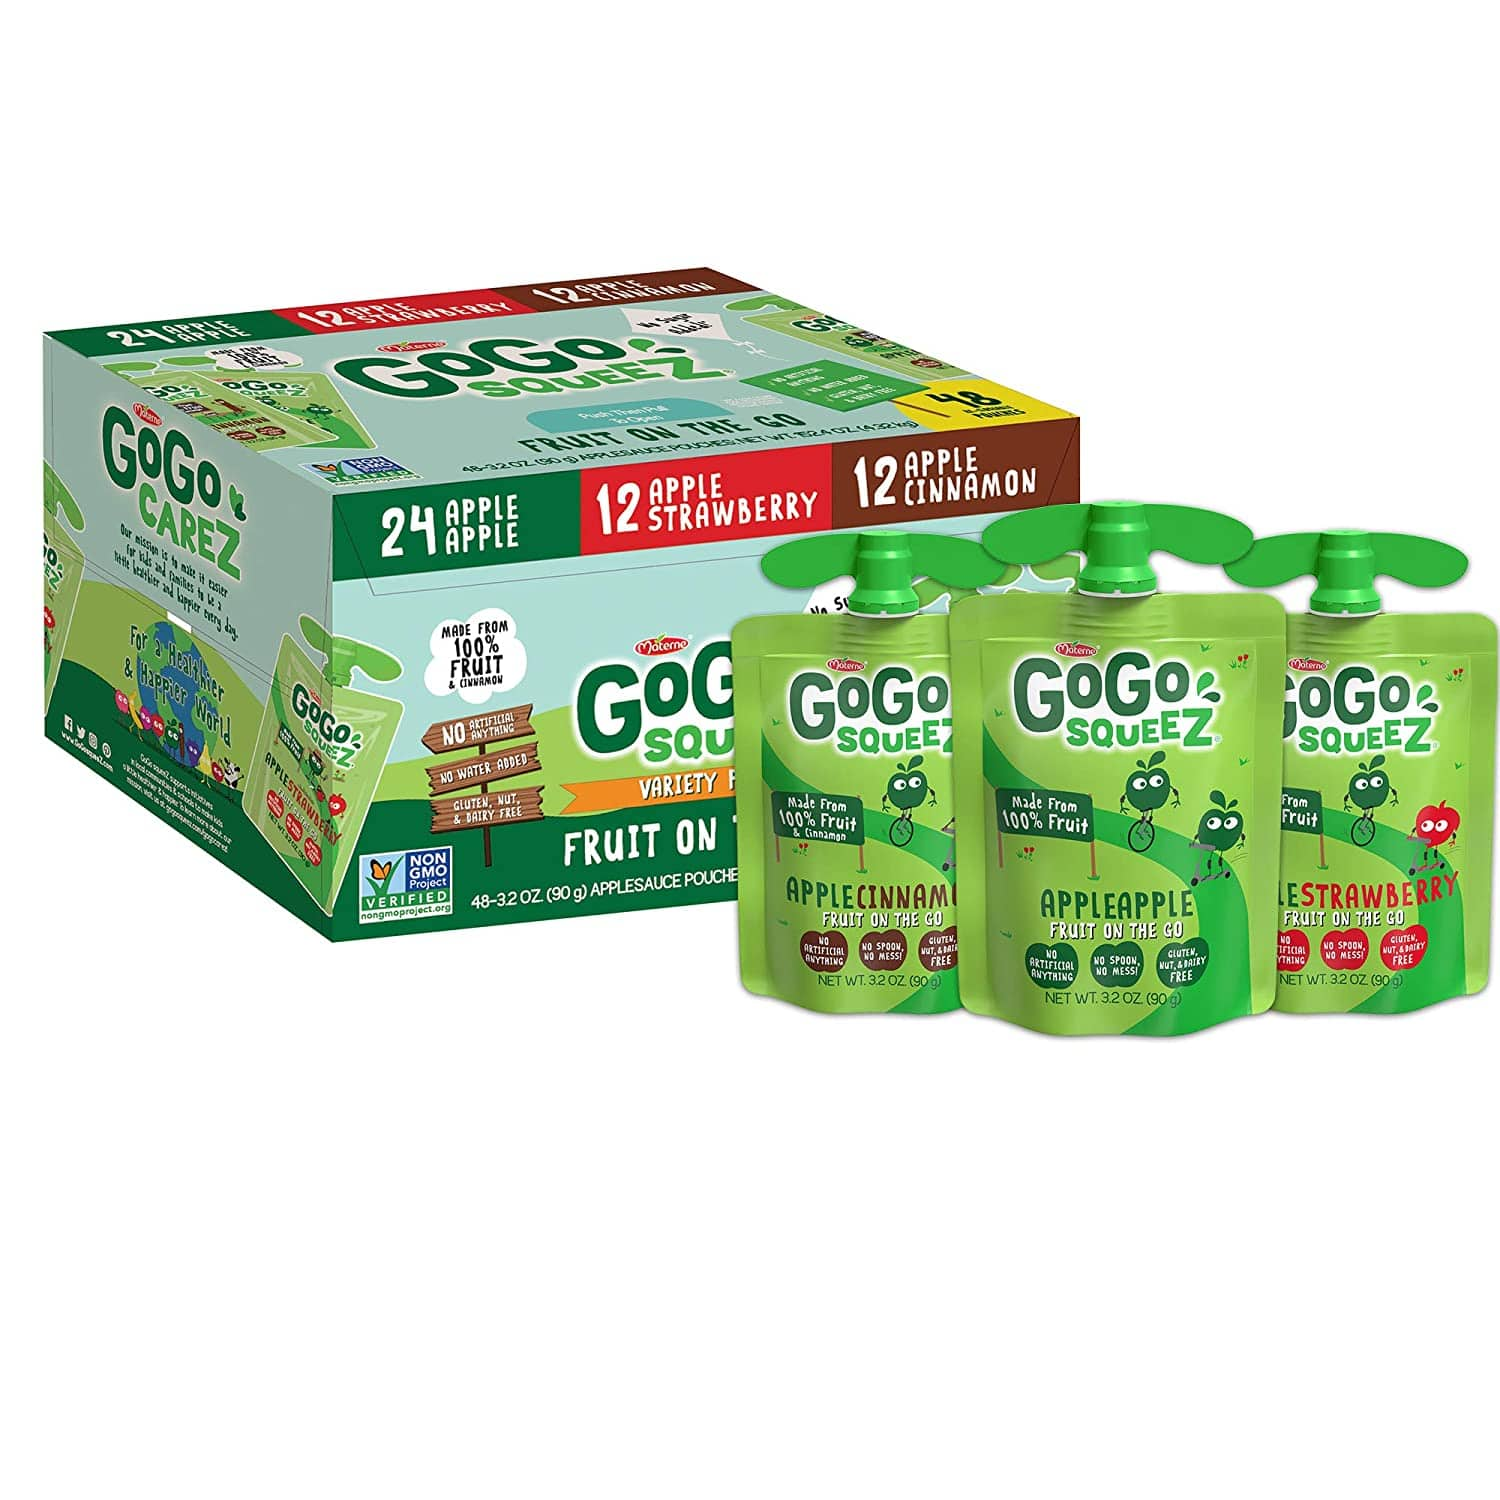 48-Ct 3.2-Oz GoGo squeeZ Applesauce (Apple Apple/Apple Strawberry/Apple Cinnamon) $16.49 w/ S&S + Free Shipping w/ Prime or on $25+